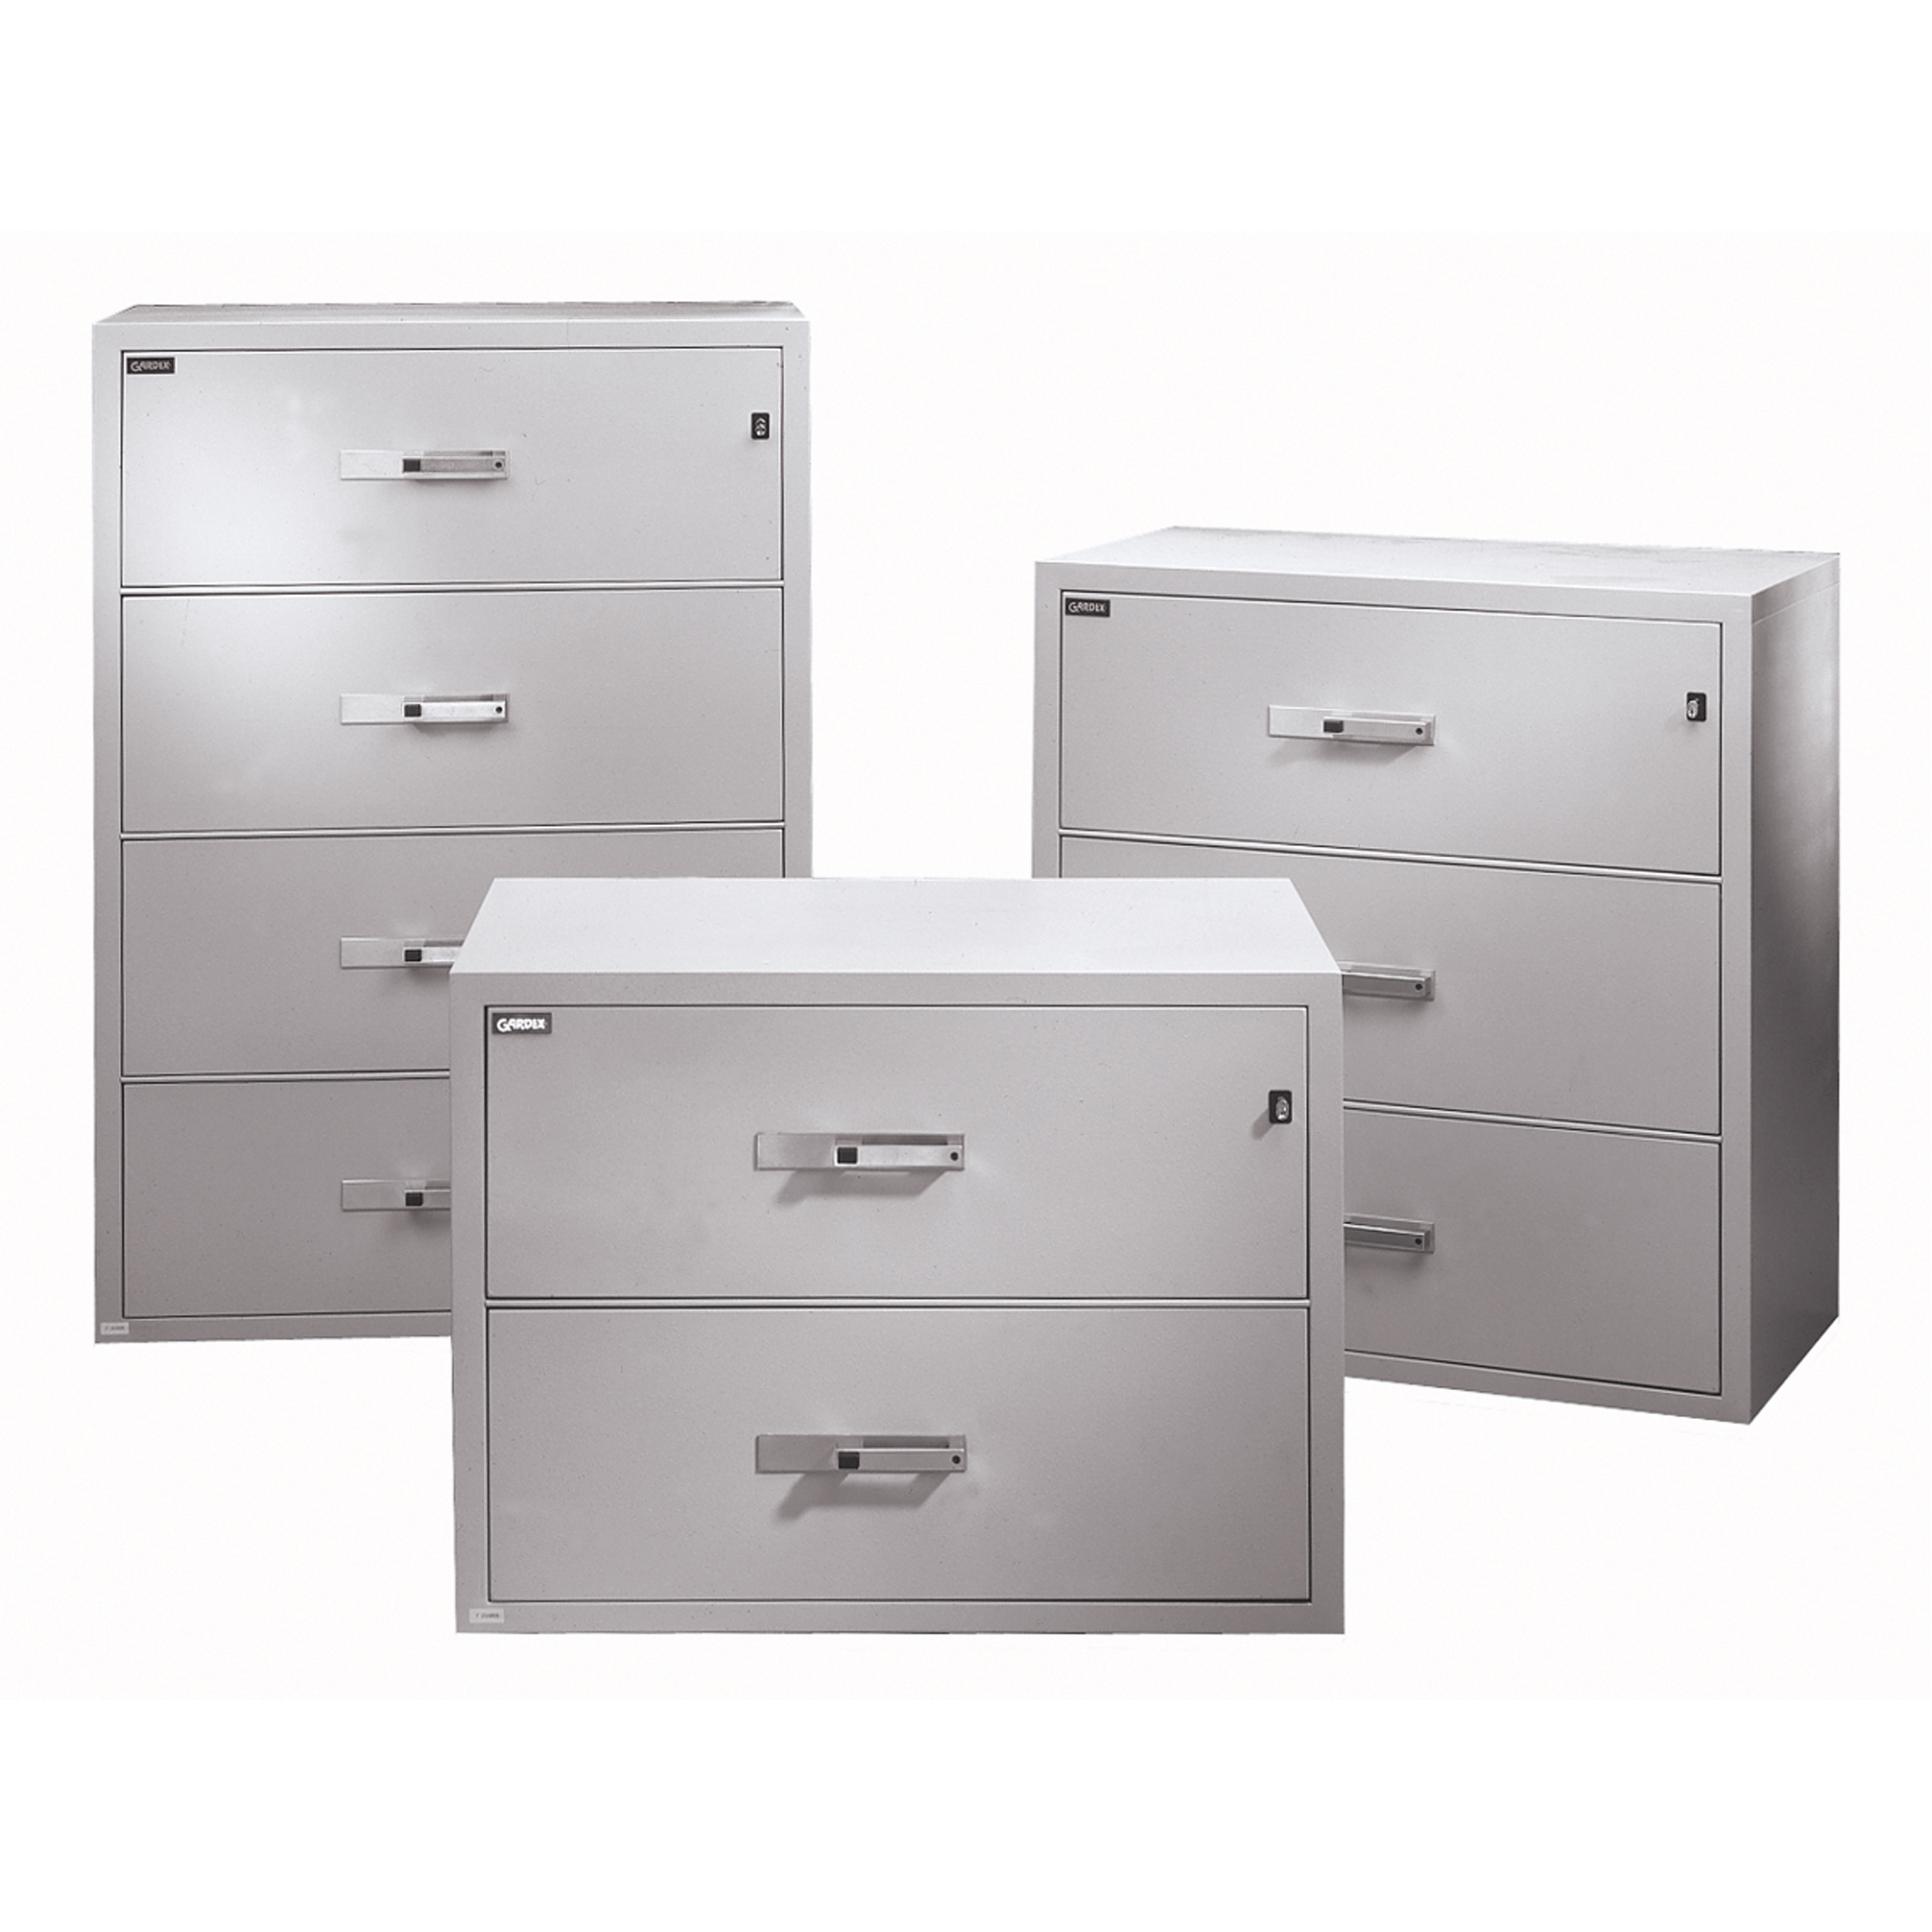 Fire Resistant Filing Cabinets Oc744